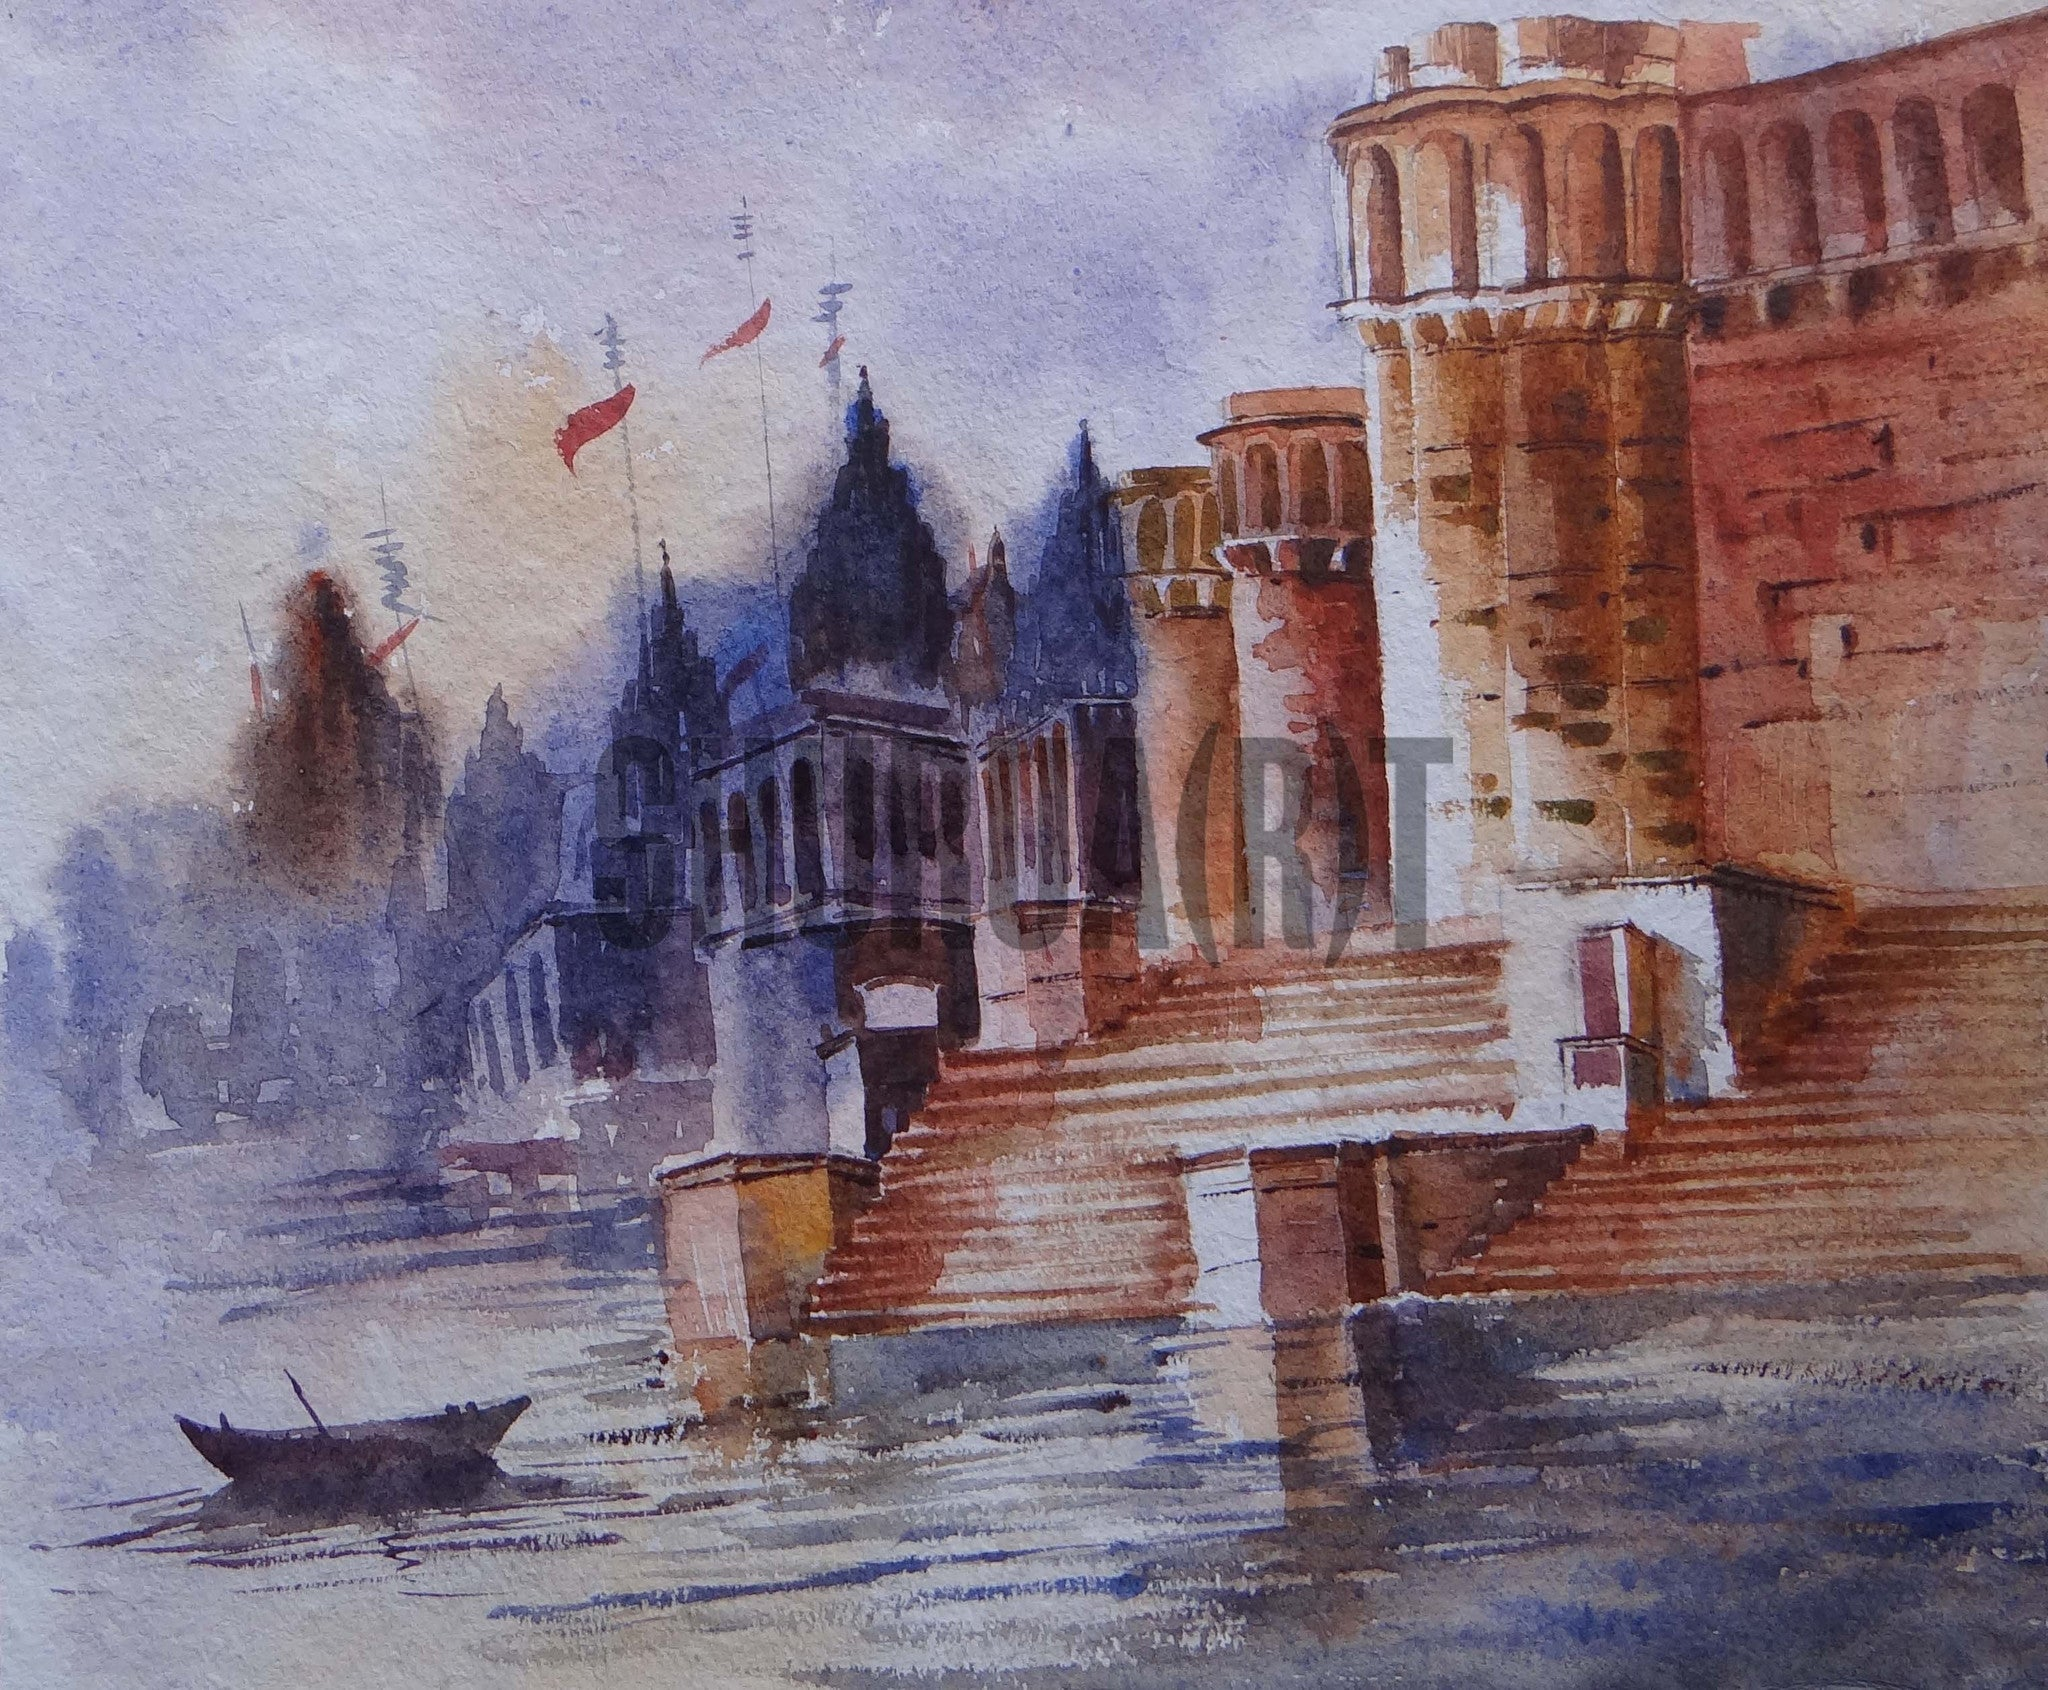 Painting of a Benares Ghat